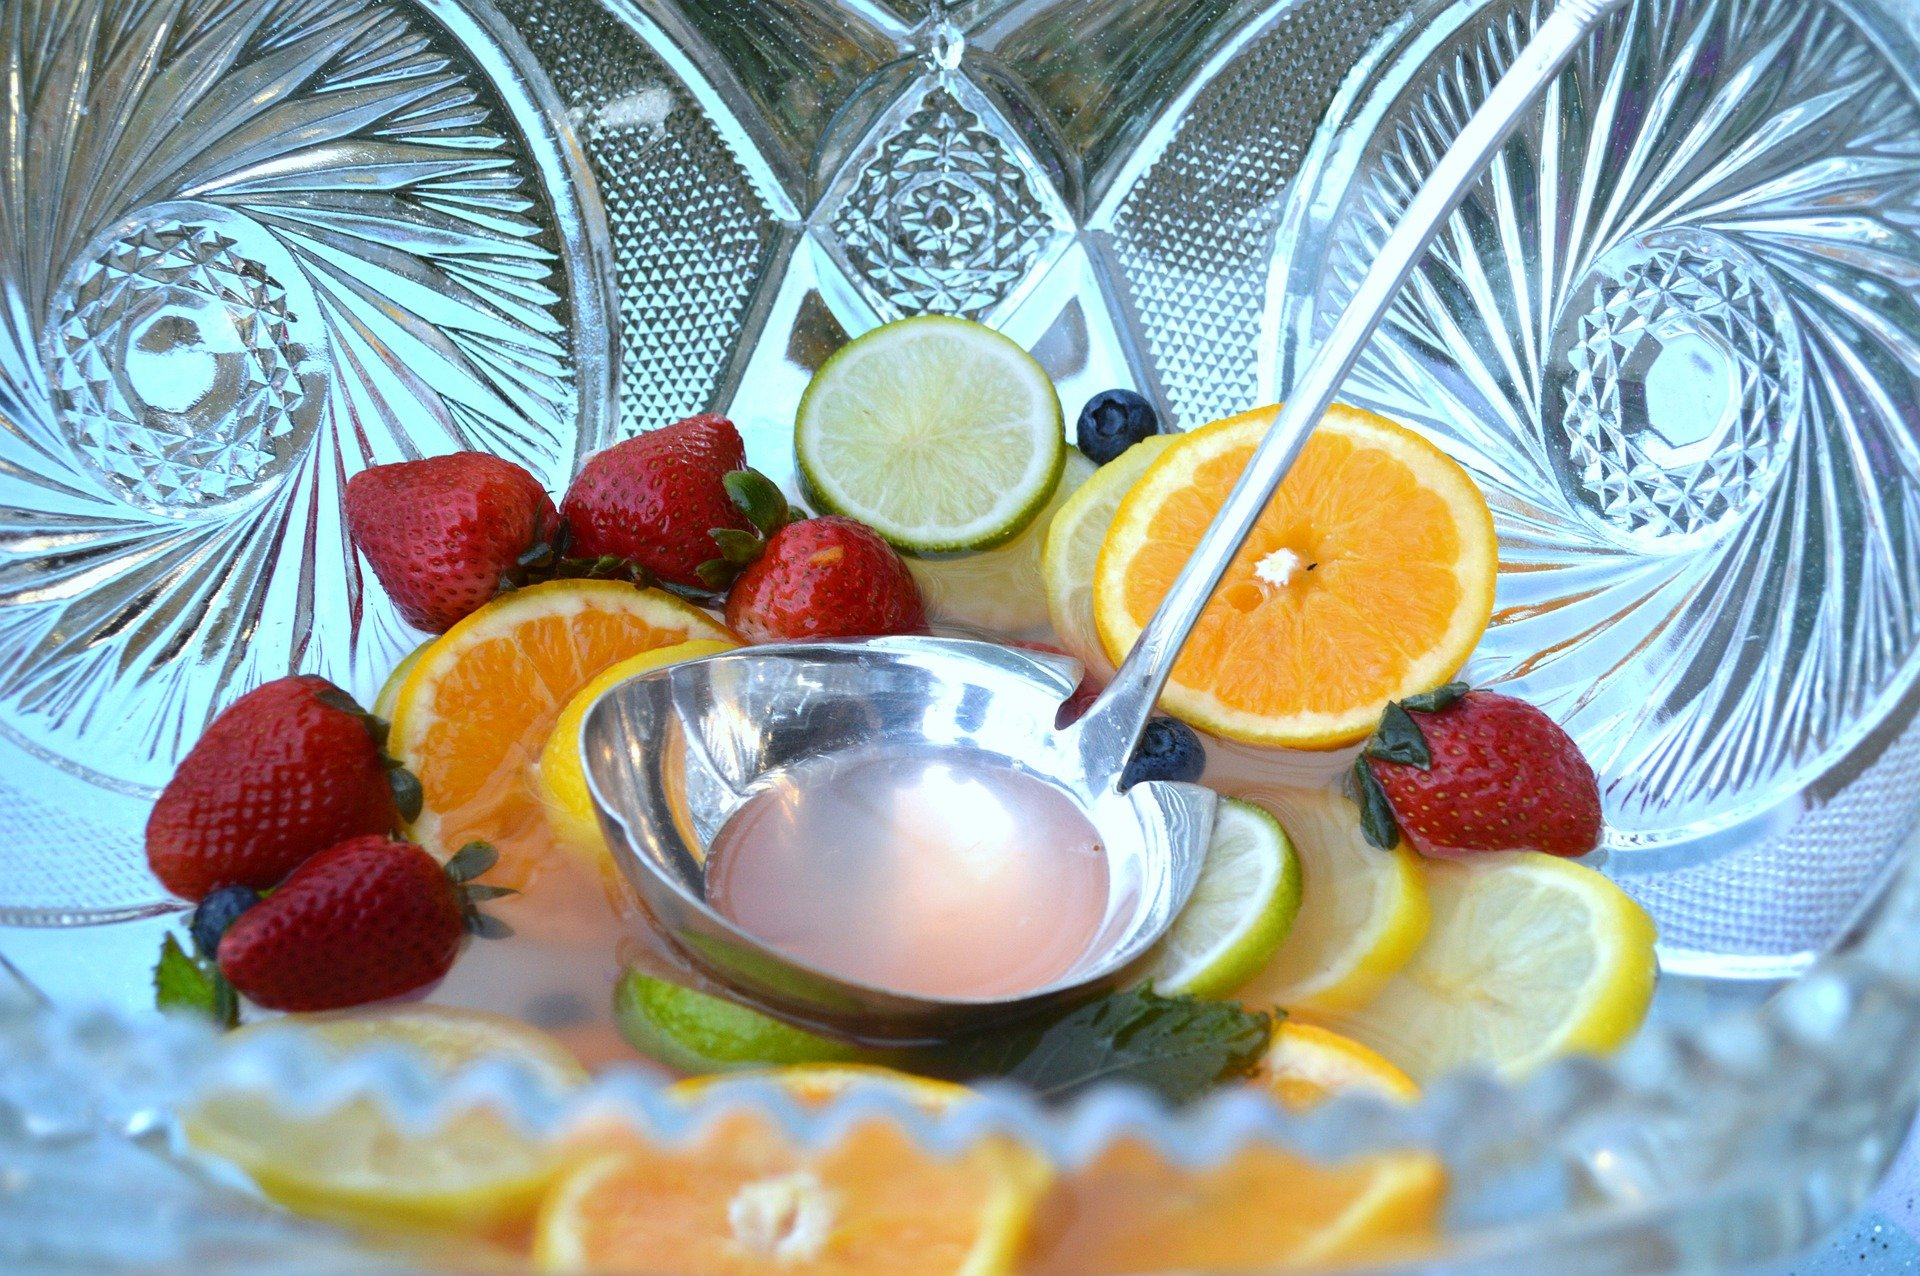 An empty punch bowl. | Photo: Pixabay/TootSweetCarole